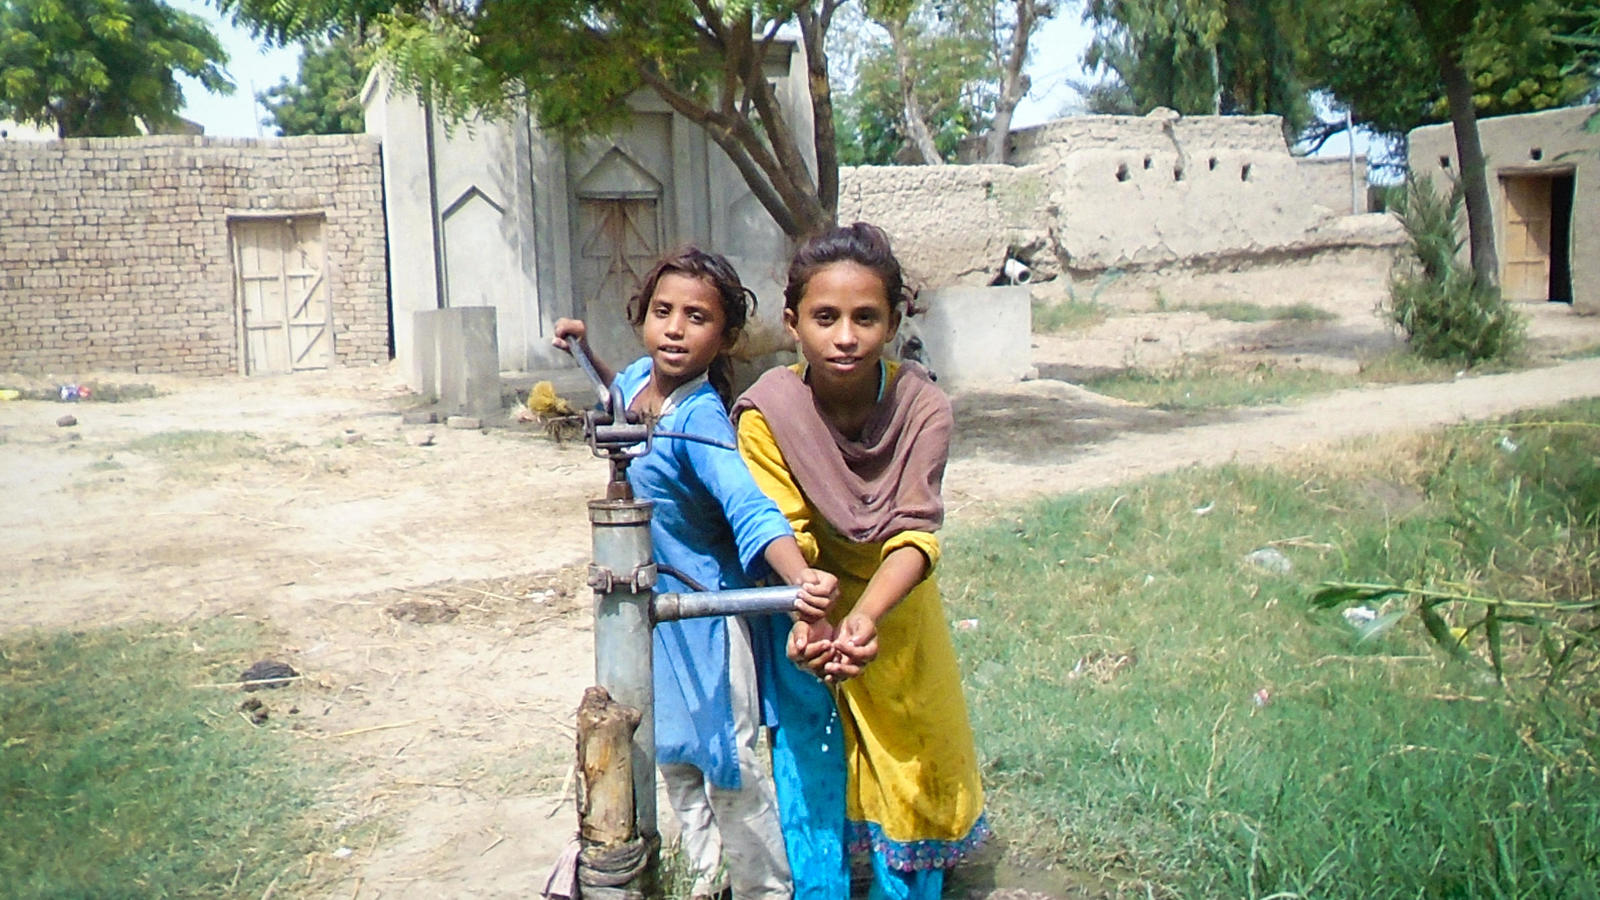 Shahana, 10, washing her hands from a pump with her friend in the village of Waan Pitafi, Pakistan.